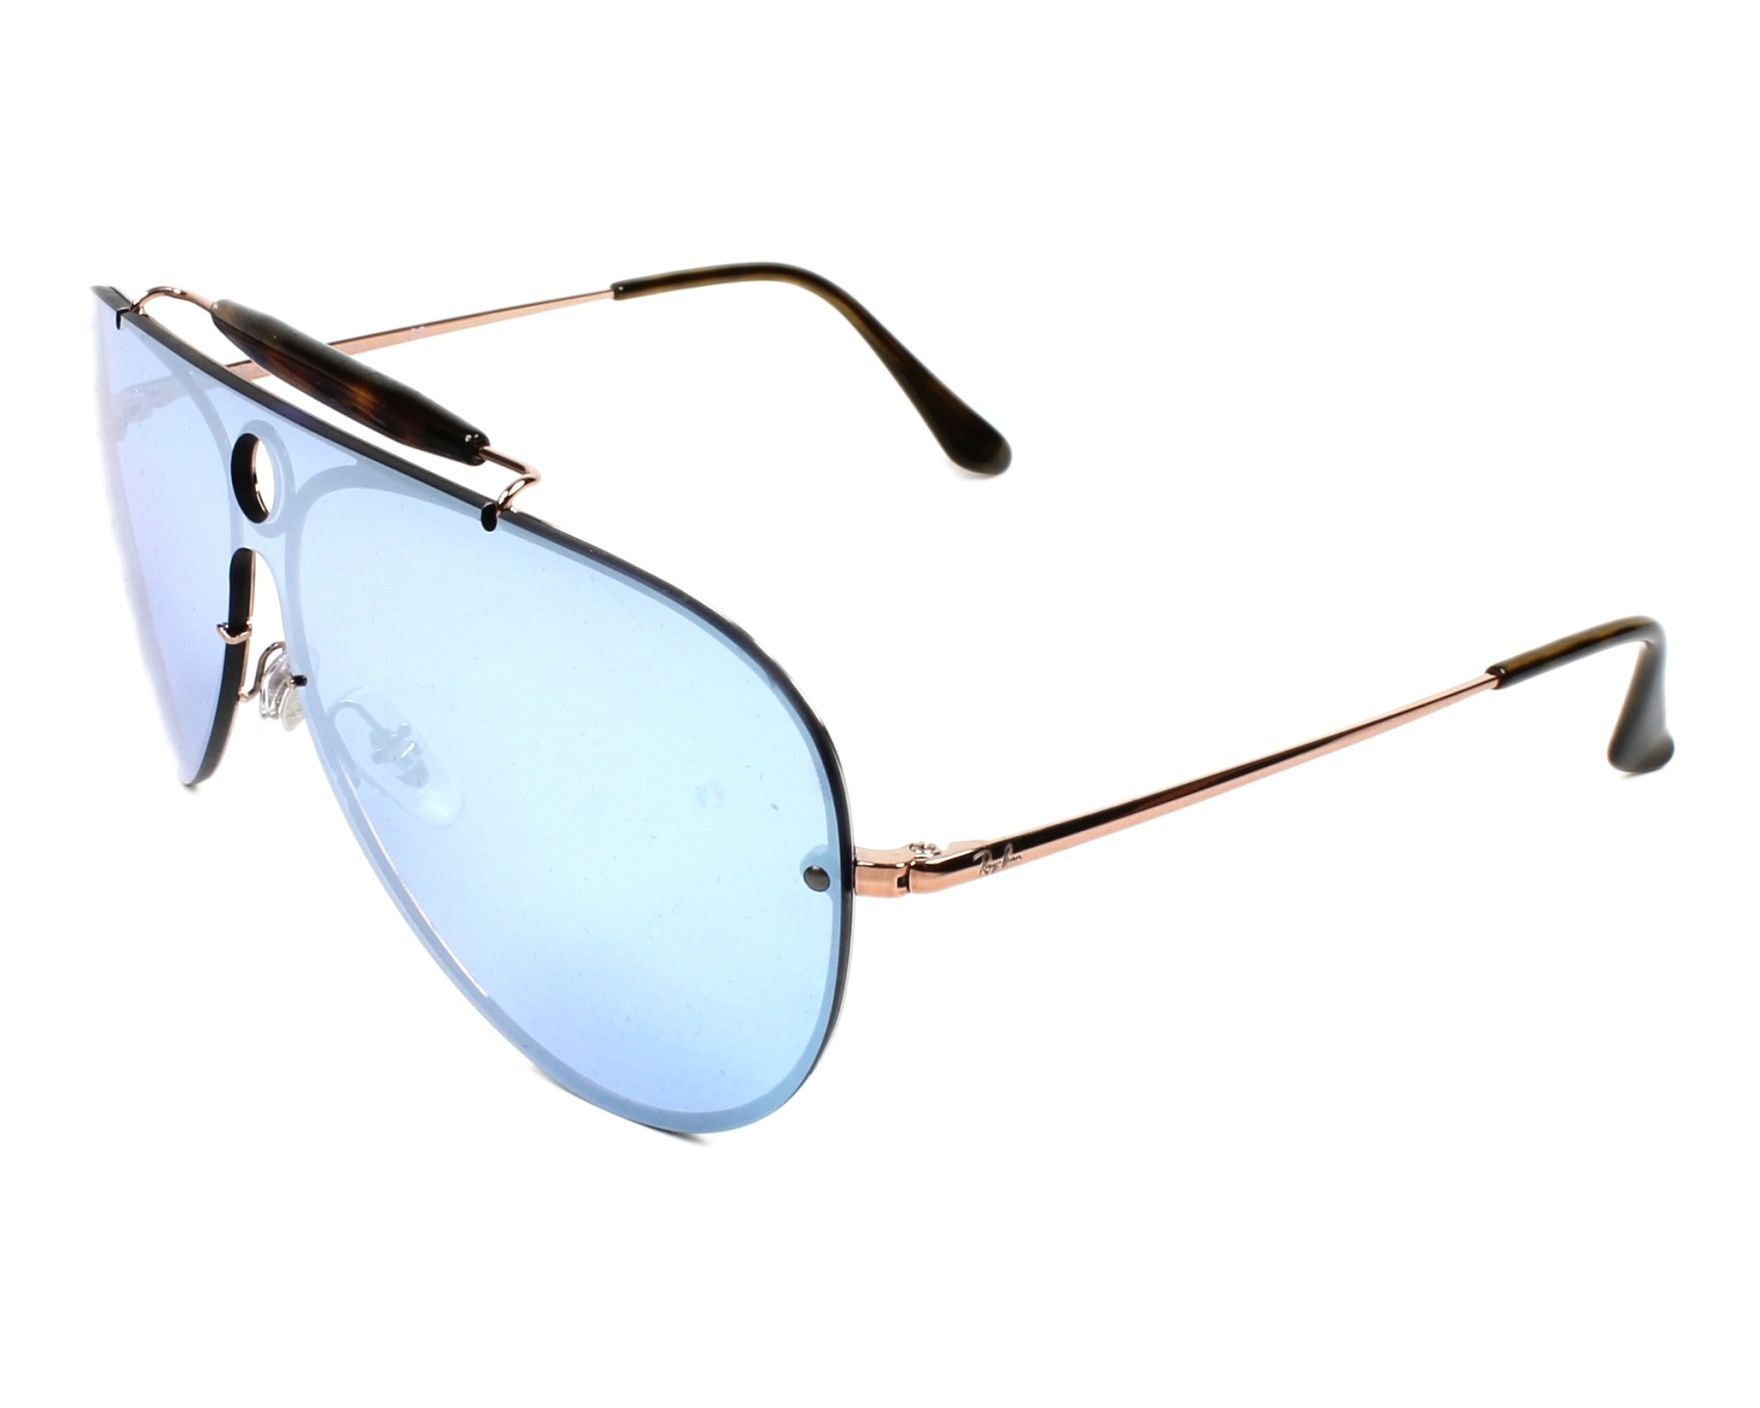 Ray-Ban Sunglasses RB-3581-N 90351U Gold Copper with Blue